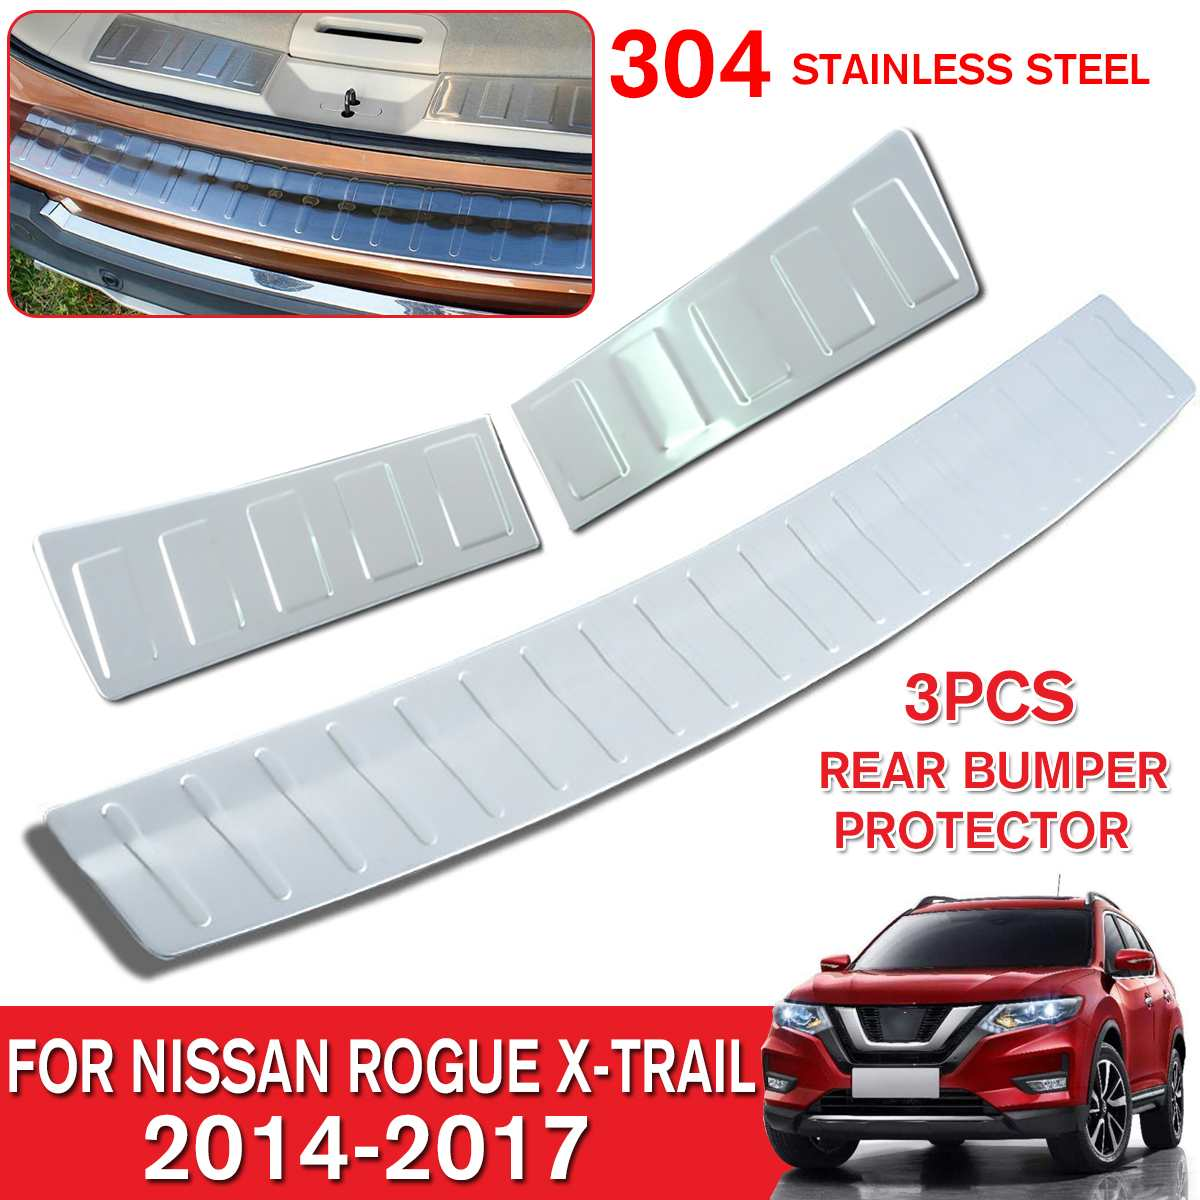 Stainless Rear Bumper Protector Guard Cover For Nissan Rogue X-trail 2014-2017